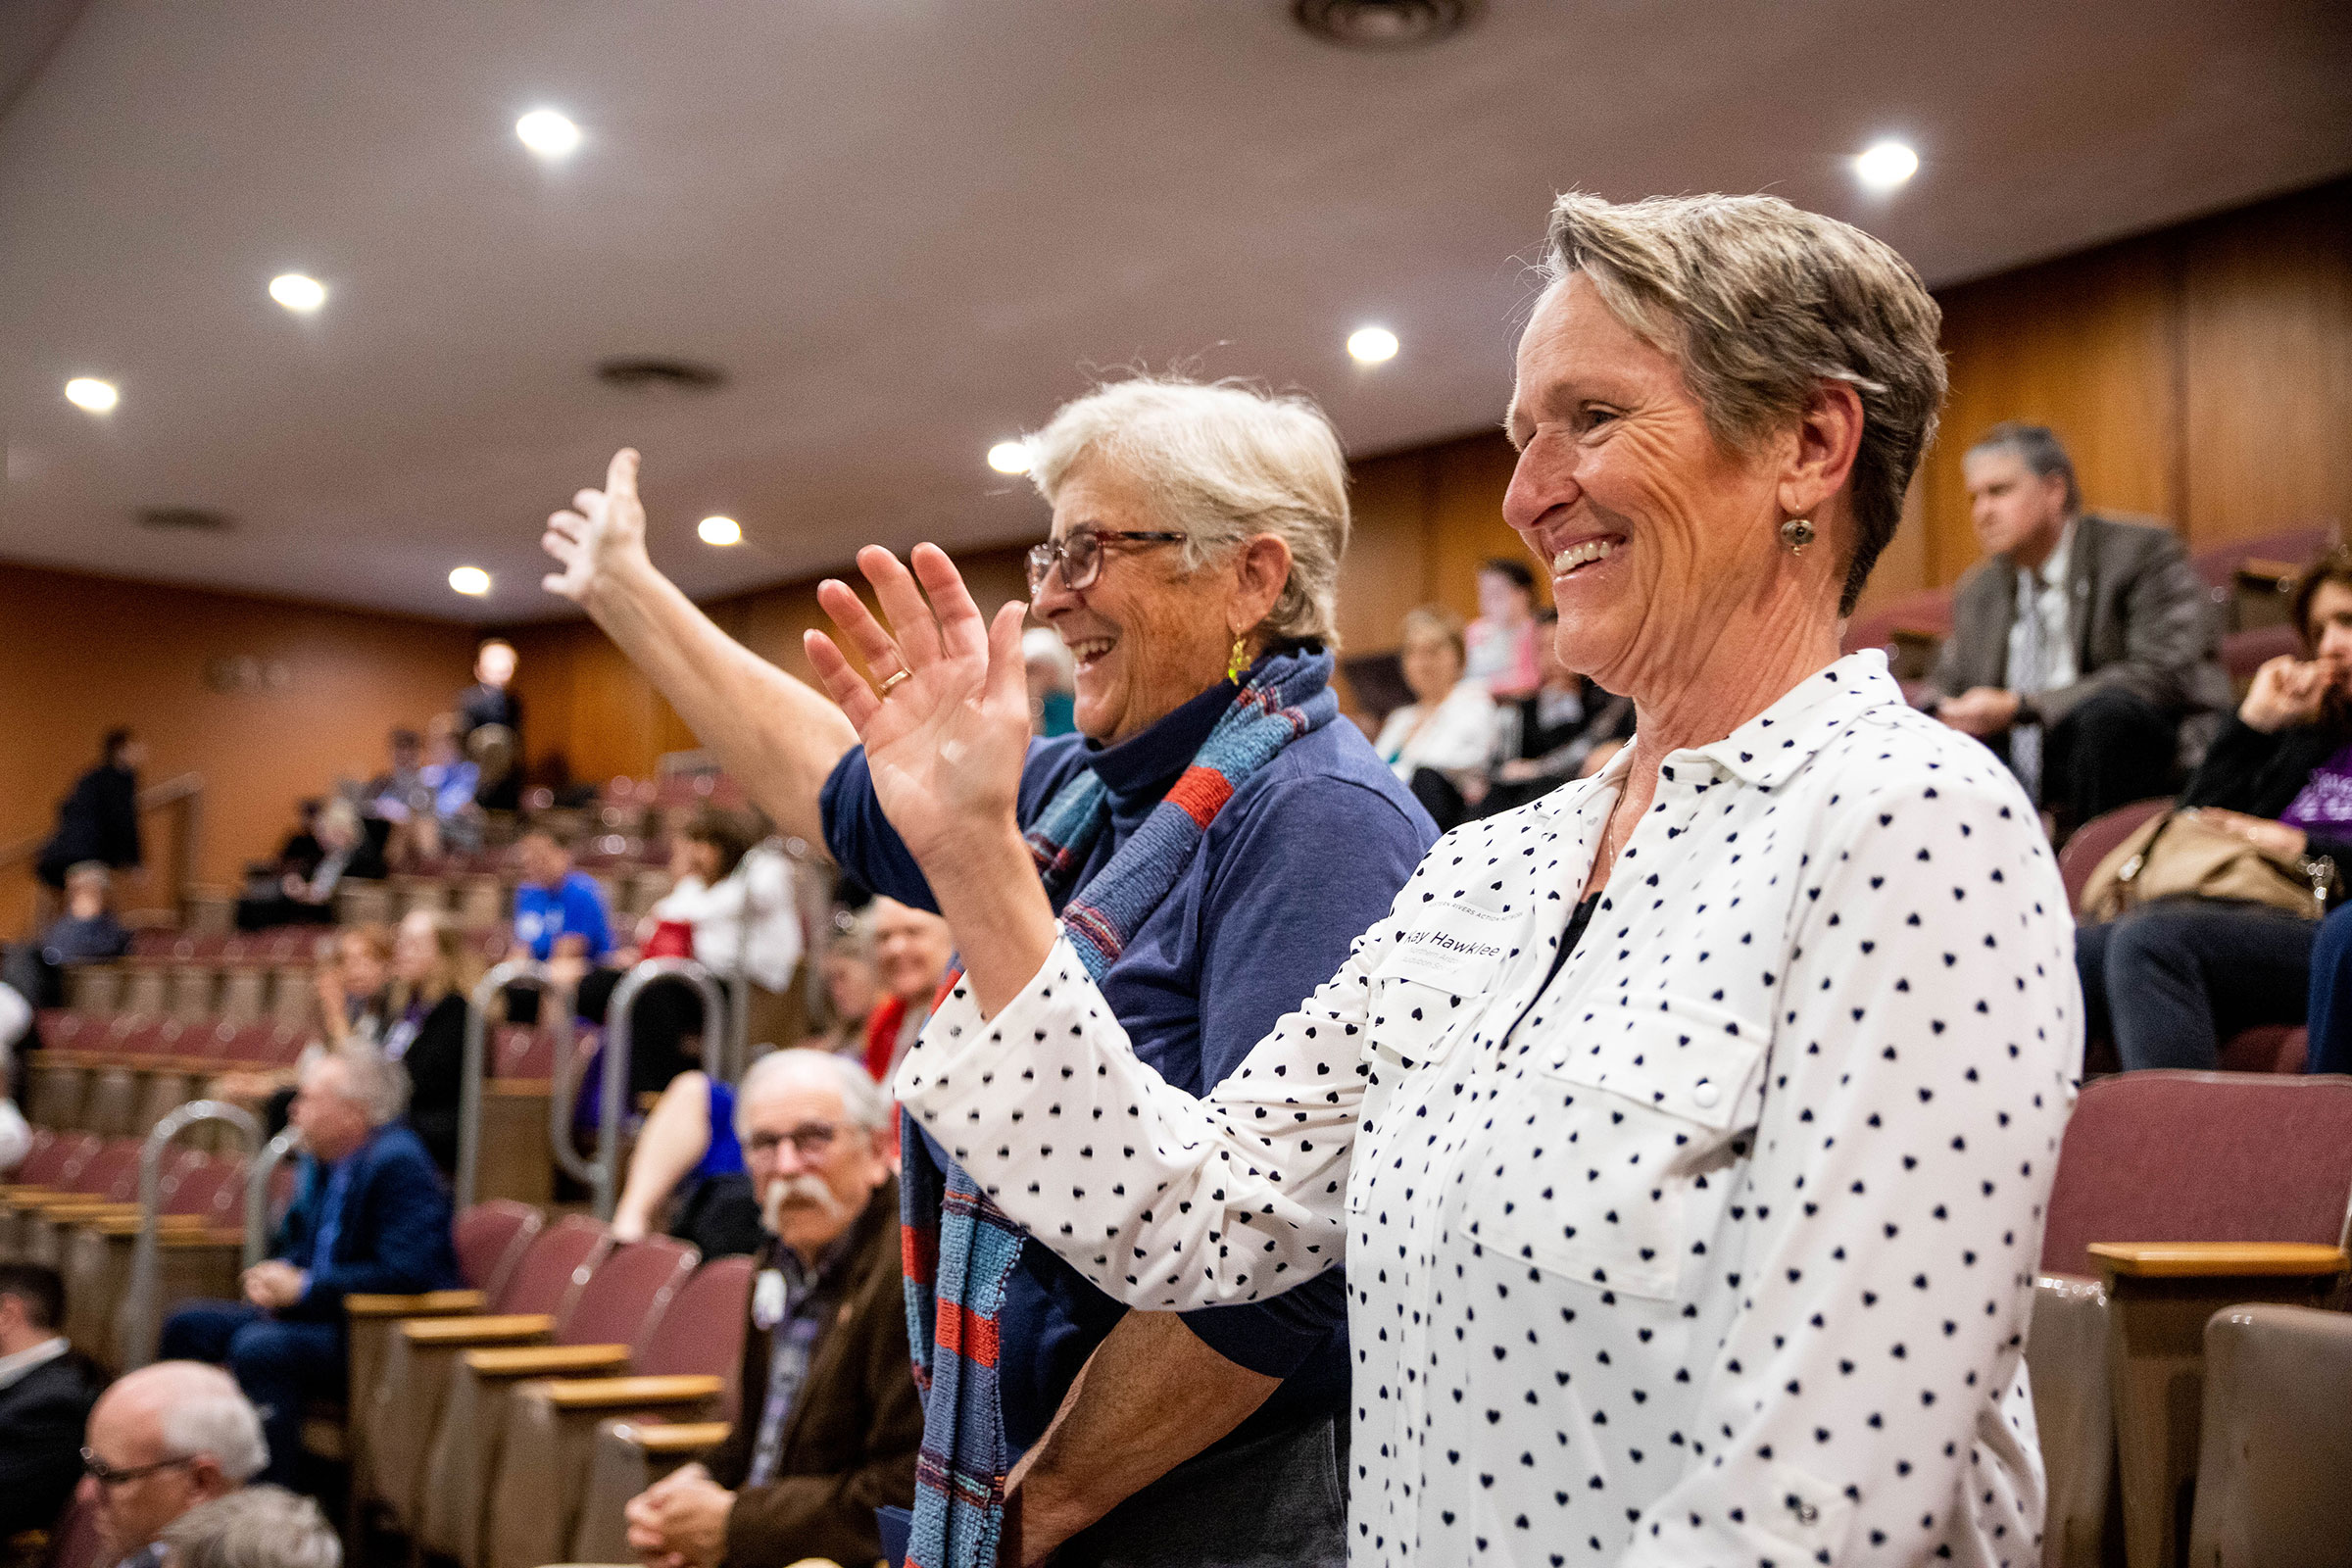 Tice Supplee, Audubon Arizona, and Kay Hawklee, Northern Arizona Audubon Society, stand as the Western Rivers Action Network is recognized with a point of personal privilege in the Arizona House of Representatives. Dominic Arenas/Audubon